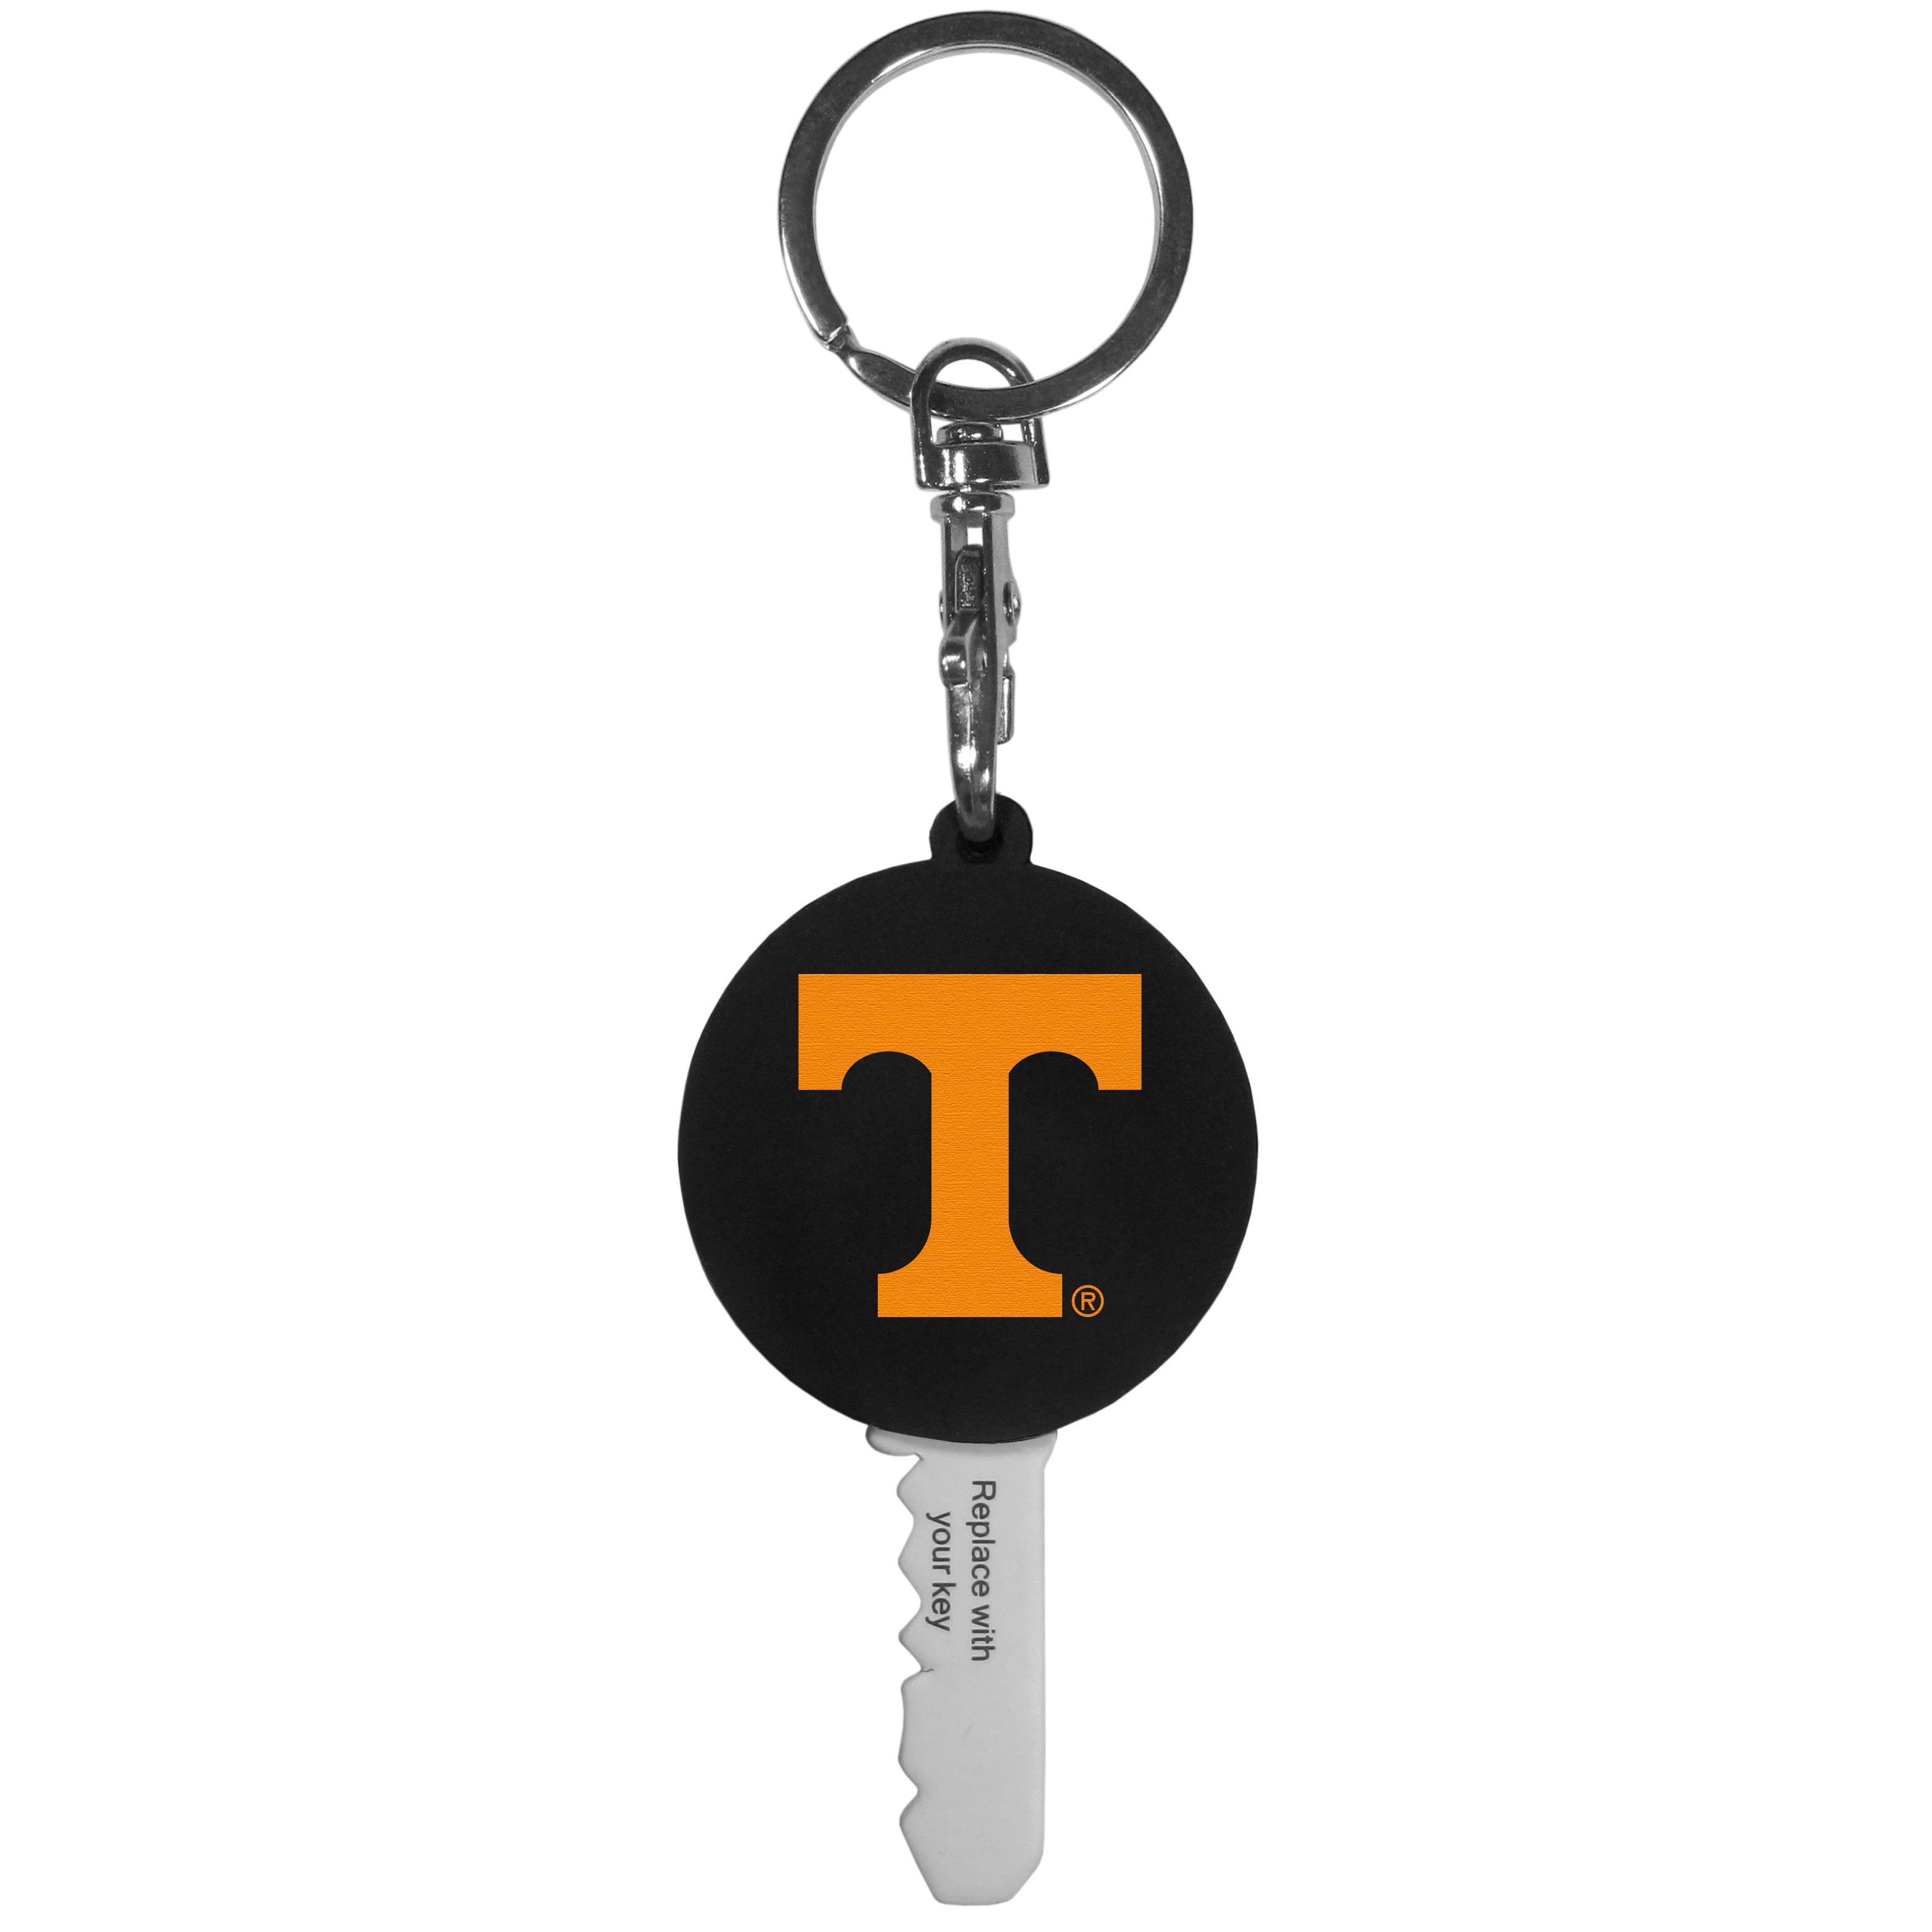 Tennessee Volunteers Mini Light Key Topper - This super handy little key topper has a built in mini light that illuminates the lock so you do not have to fumble in the dark trying to open your door. You slide your house key into the top of the rubber key topper and your ready to go. The topper features a Tennessee Volunteers logo on the front of the topper.